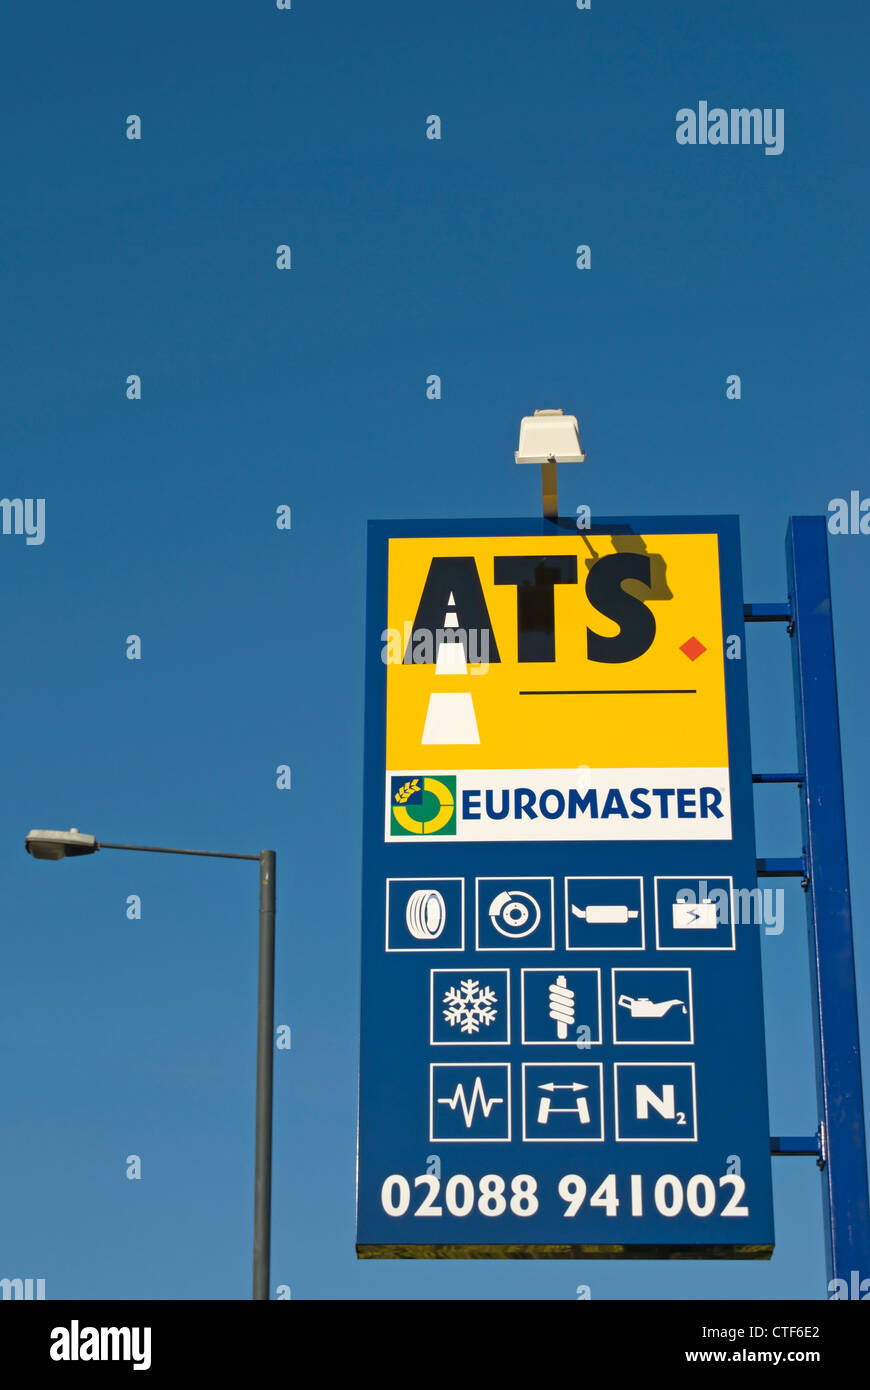 ats euromaster sign at a branch of the car tyre specialists in twickenham, middlesex, england Stock Photo